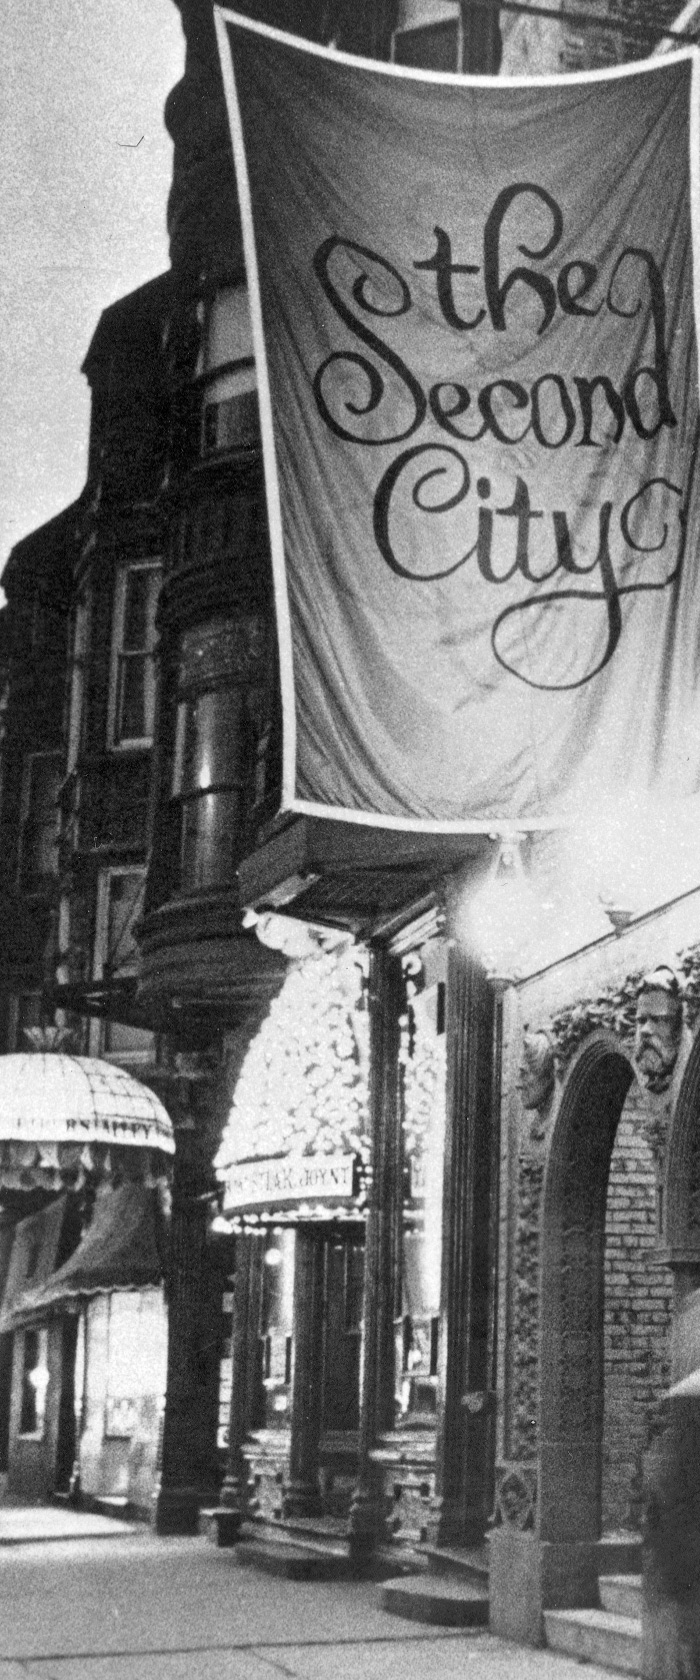 The Second City Moves to current location